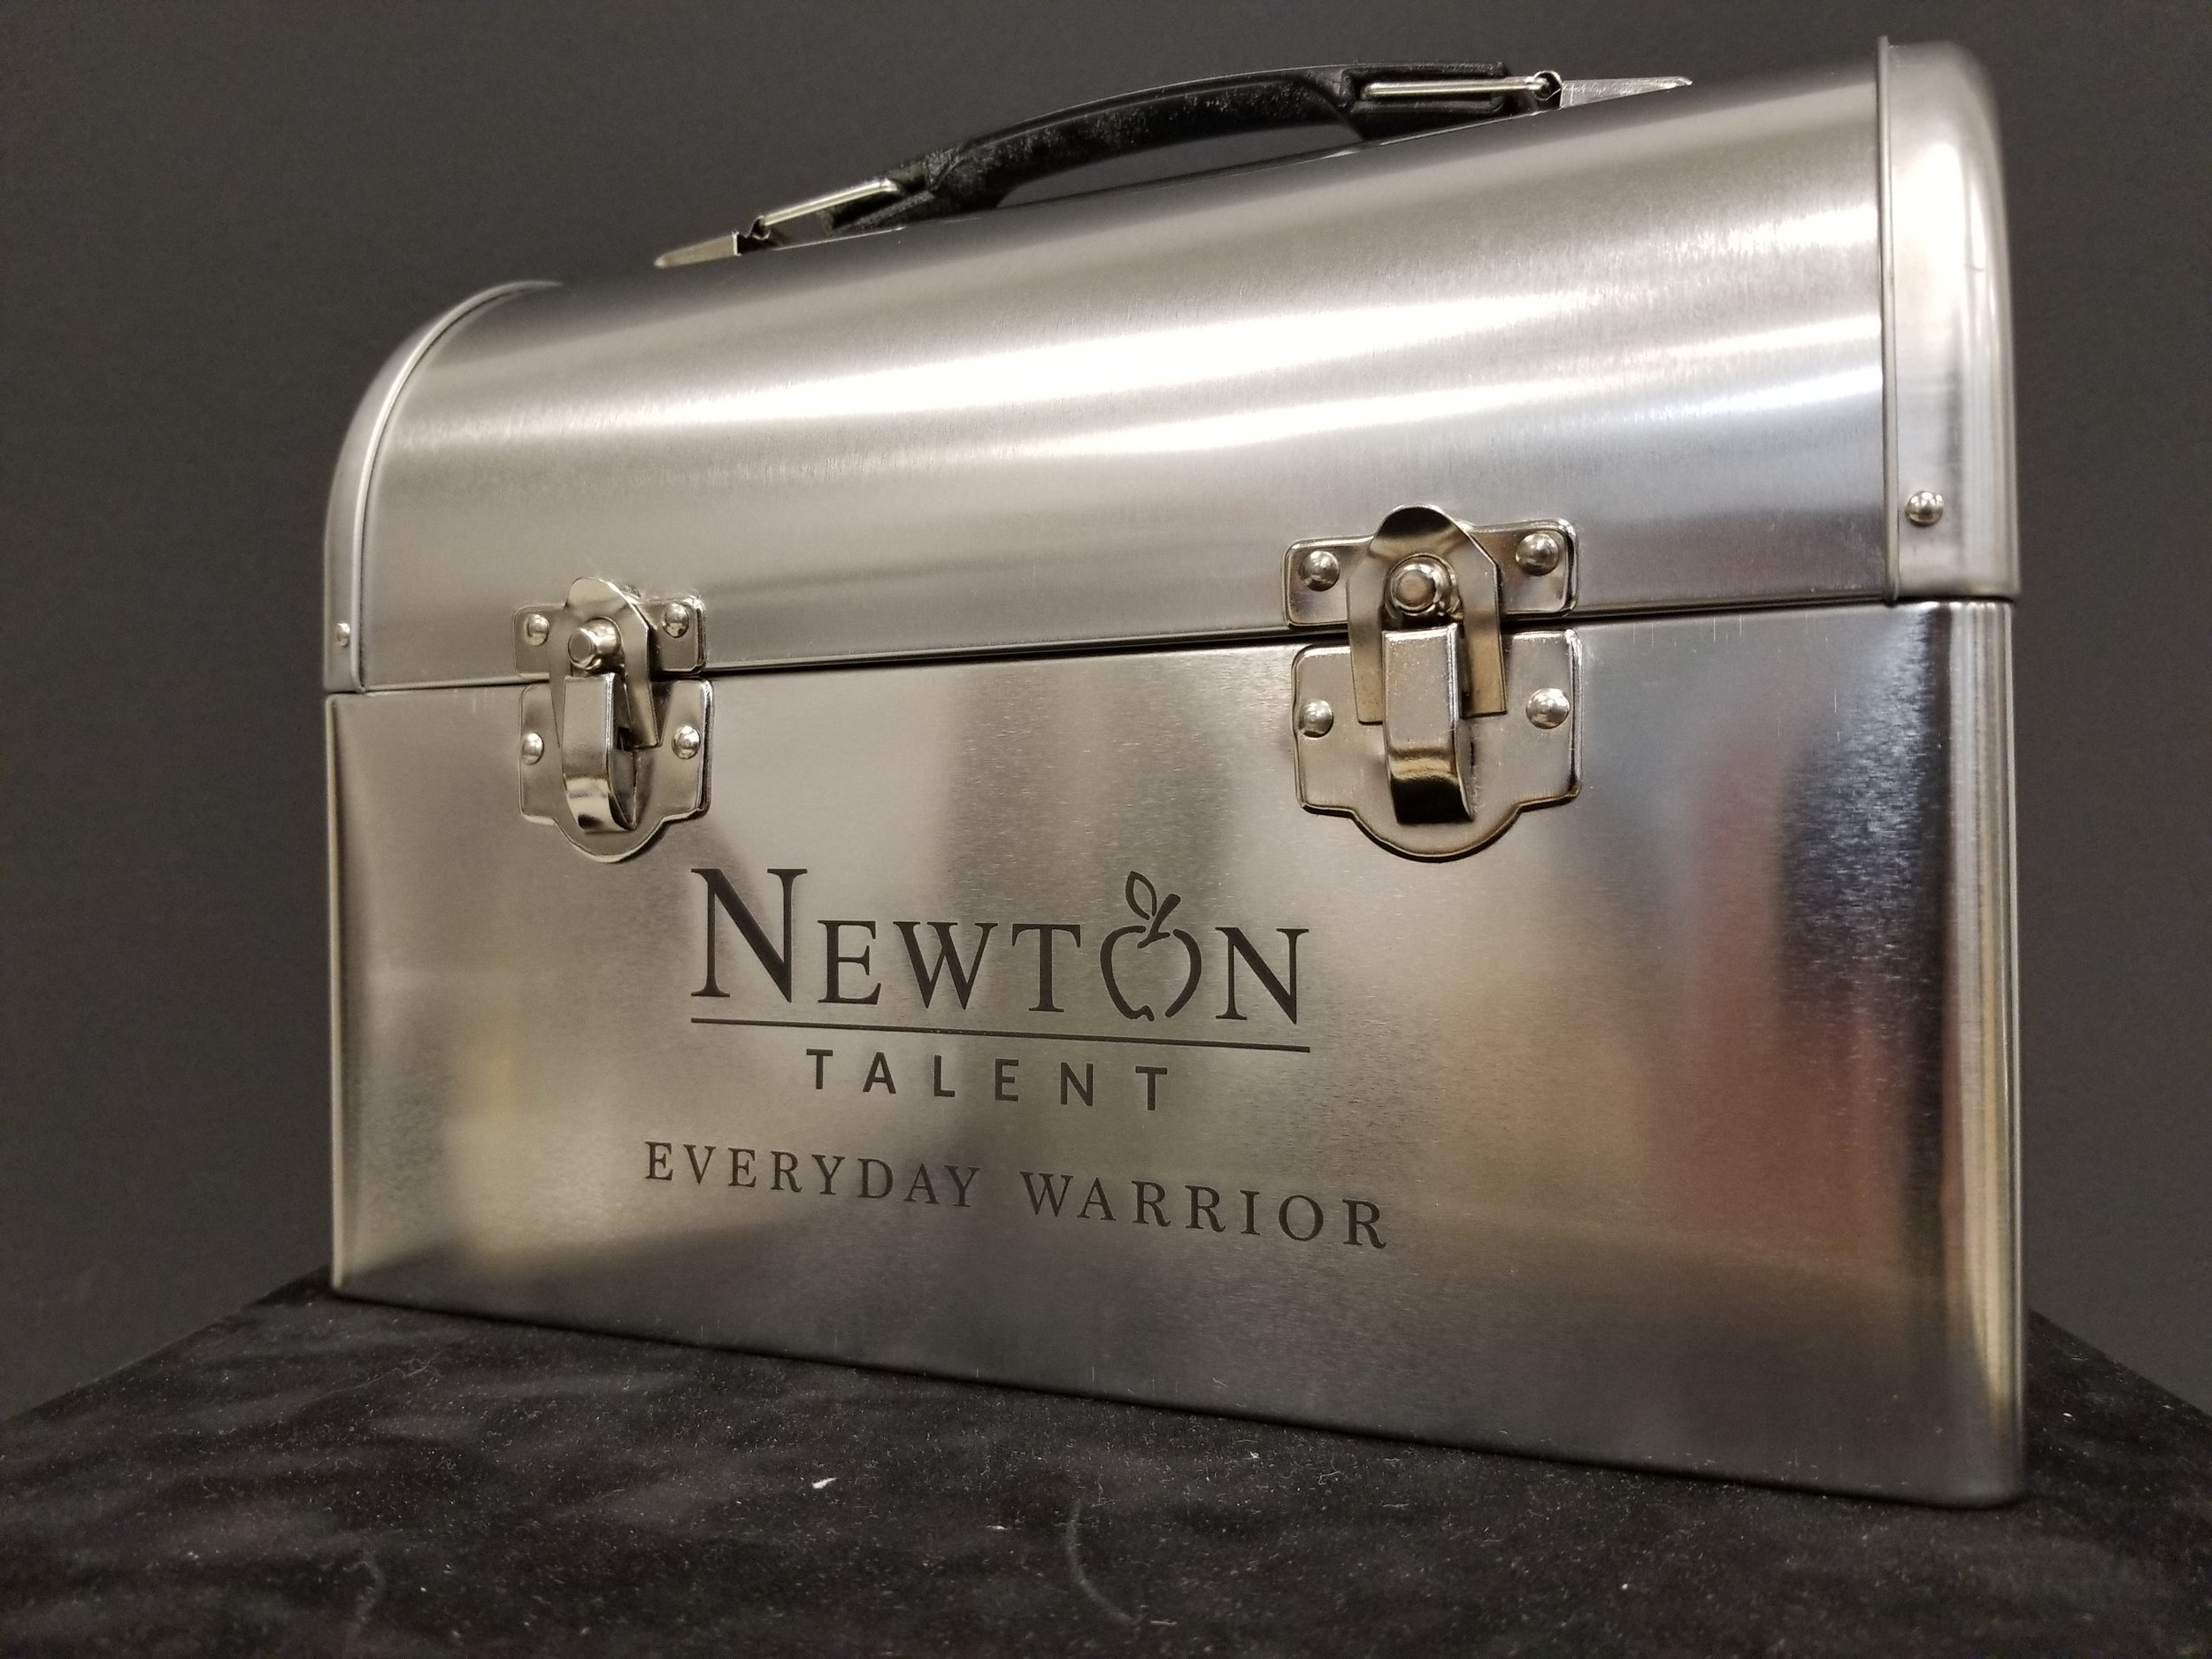 Branded Lunch Box - Custom Branded Award - Branded Marketing Giveaway - Corporate Identity Projects - Branding Projects from Engrave It Houston